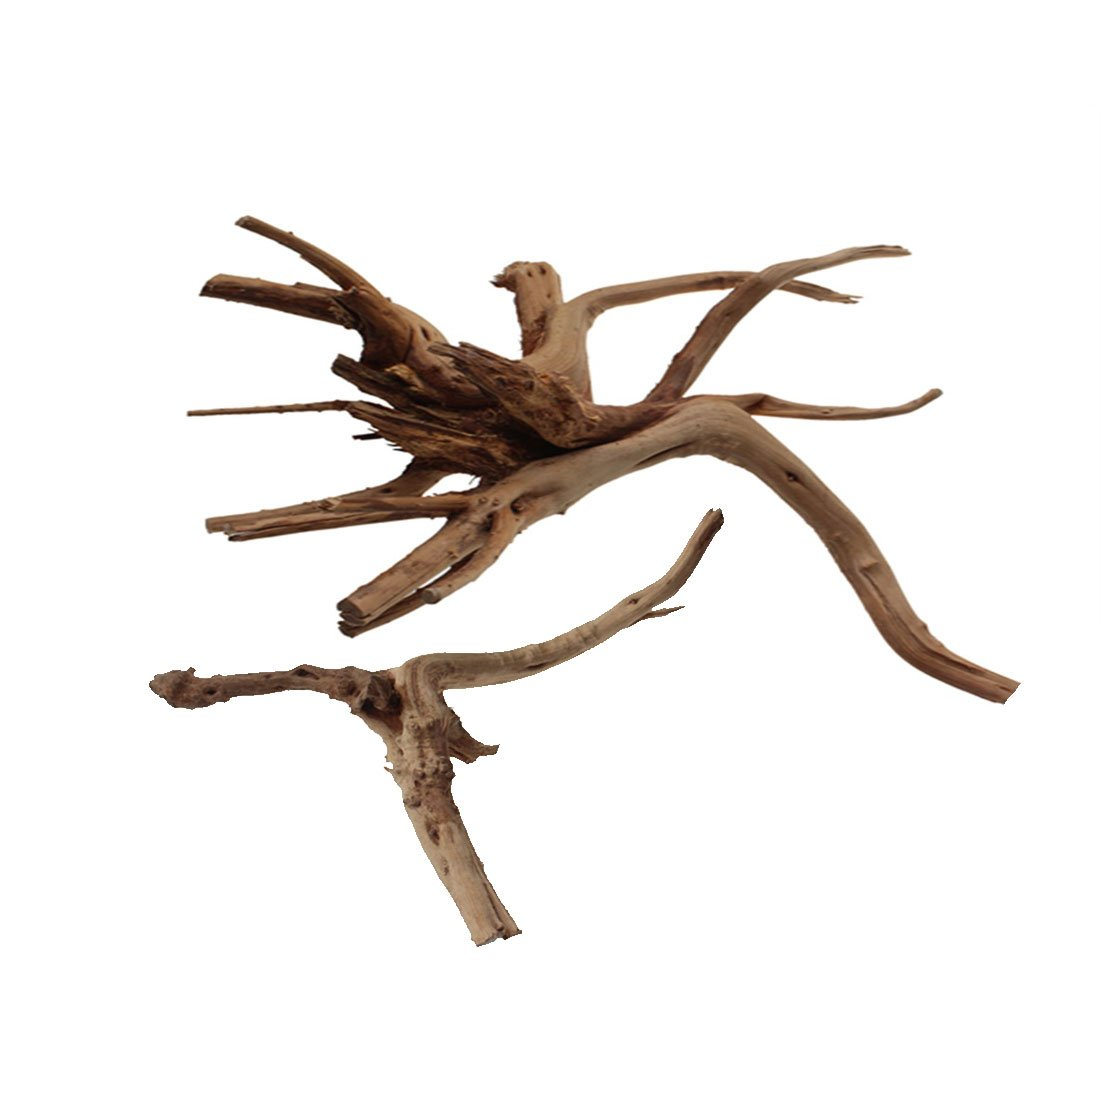 Emours Aquarium Driftwood Tropical Fish Plant Habitat Decor Varies Size, Small & Large,2 pcs Pack by Emours Pet Pet accessories